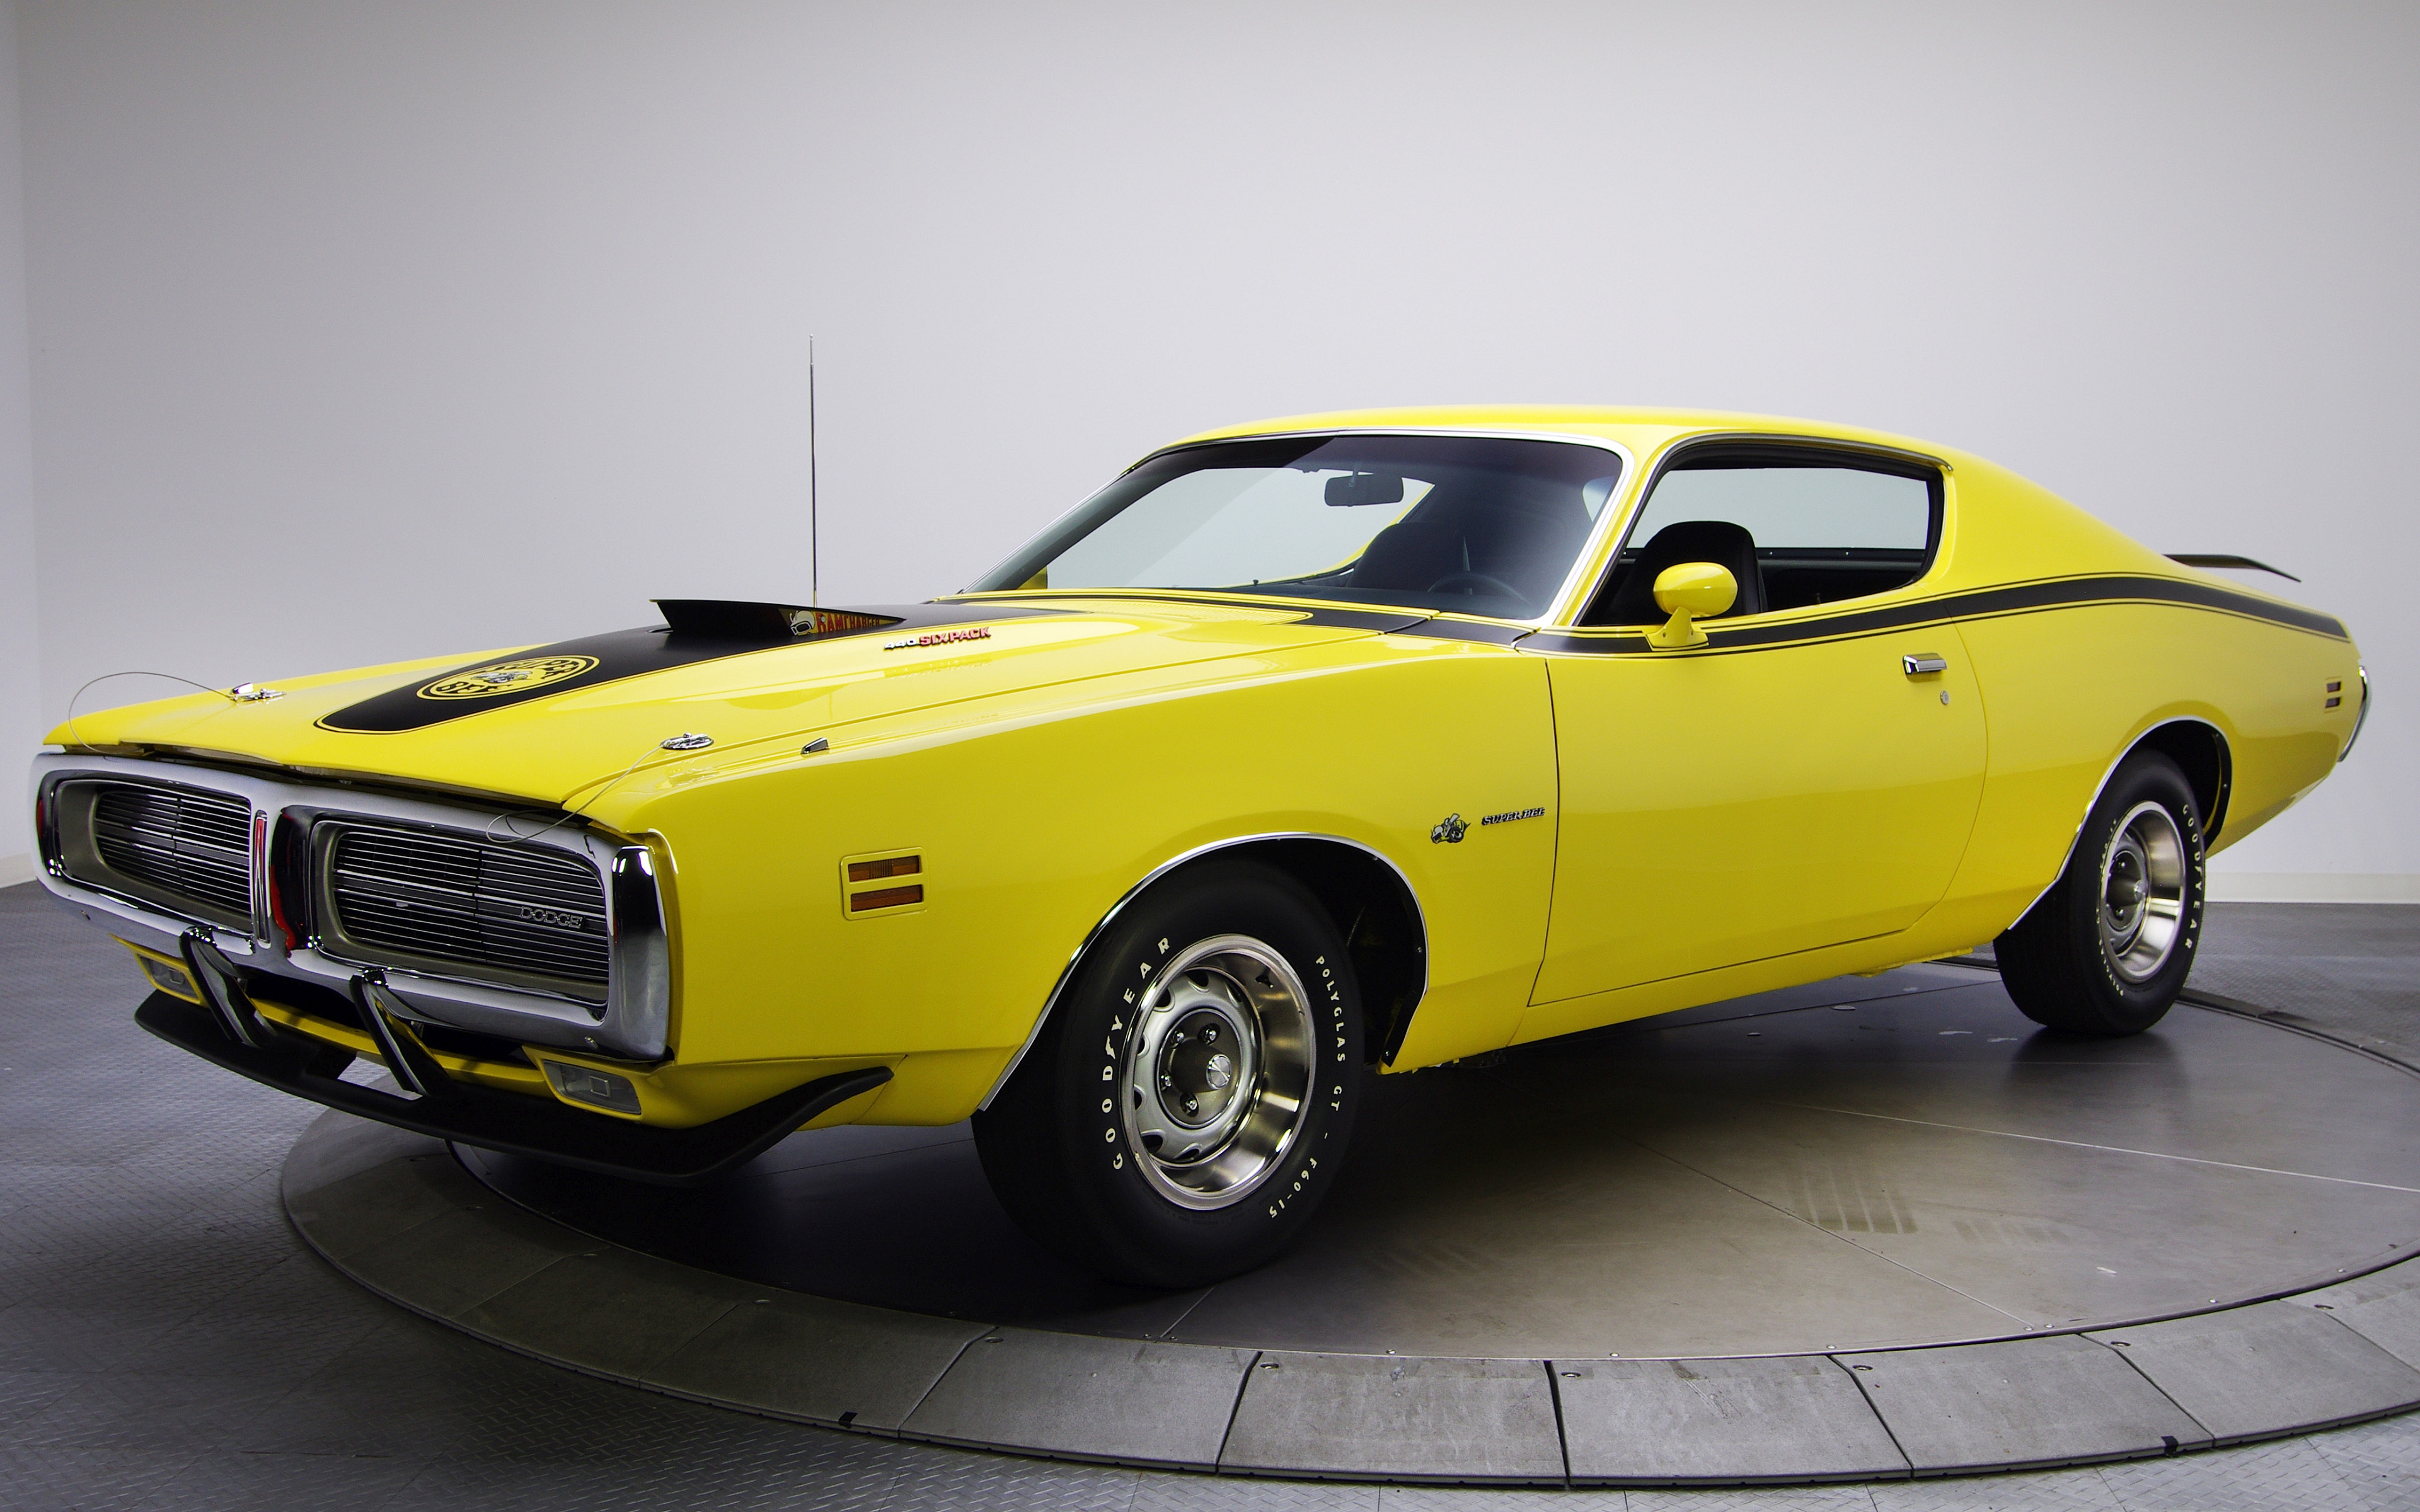 Dodge Dodge Charger Dodge Super Bee Yellow Car 3840x2400